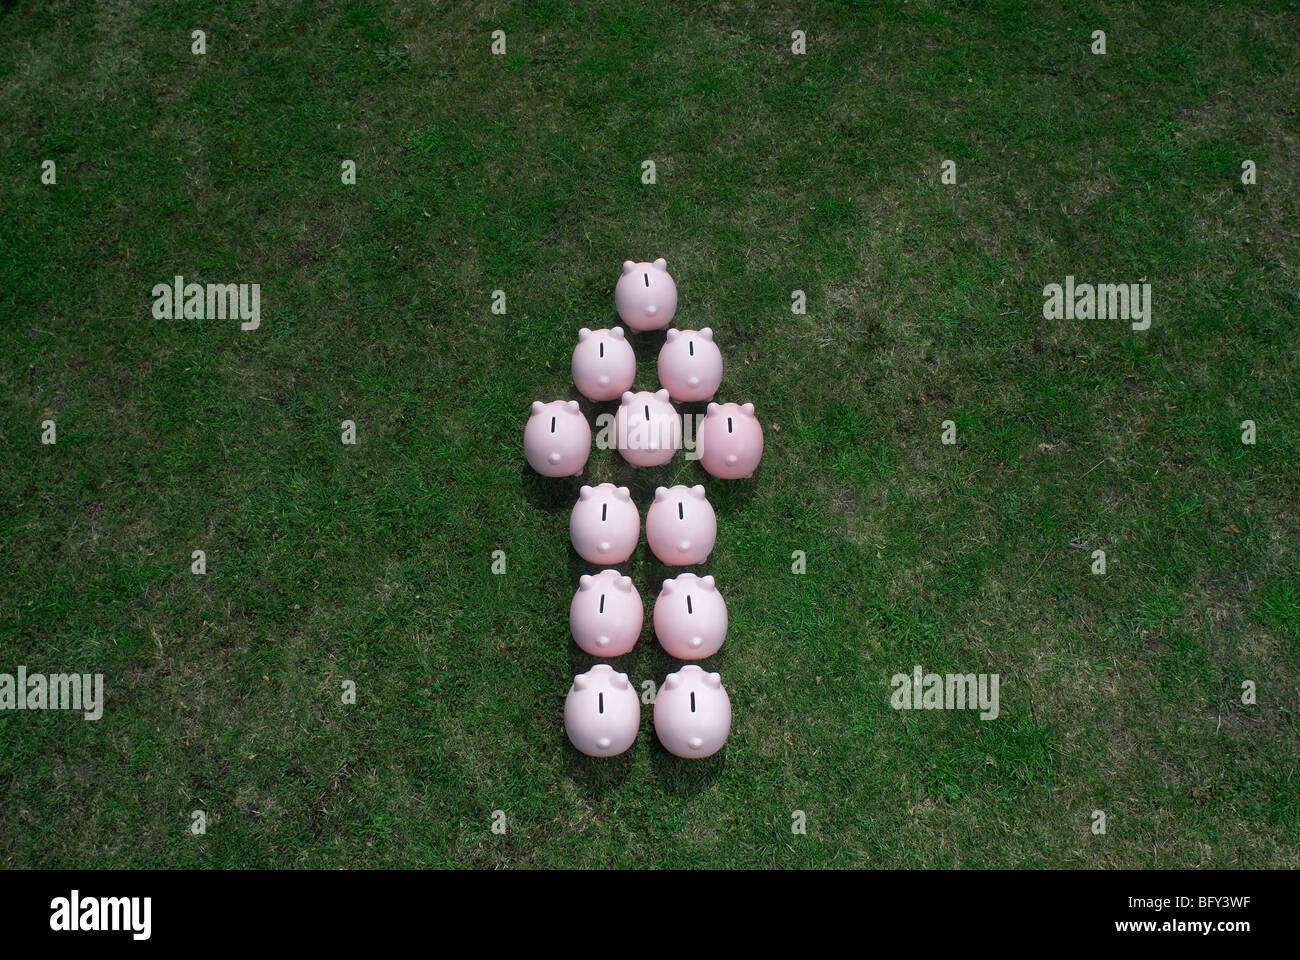 piggy banks in an arrow formation - Stock Image